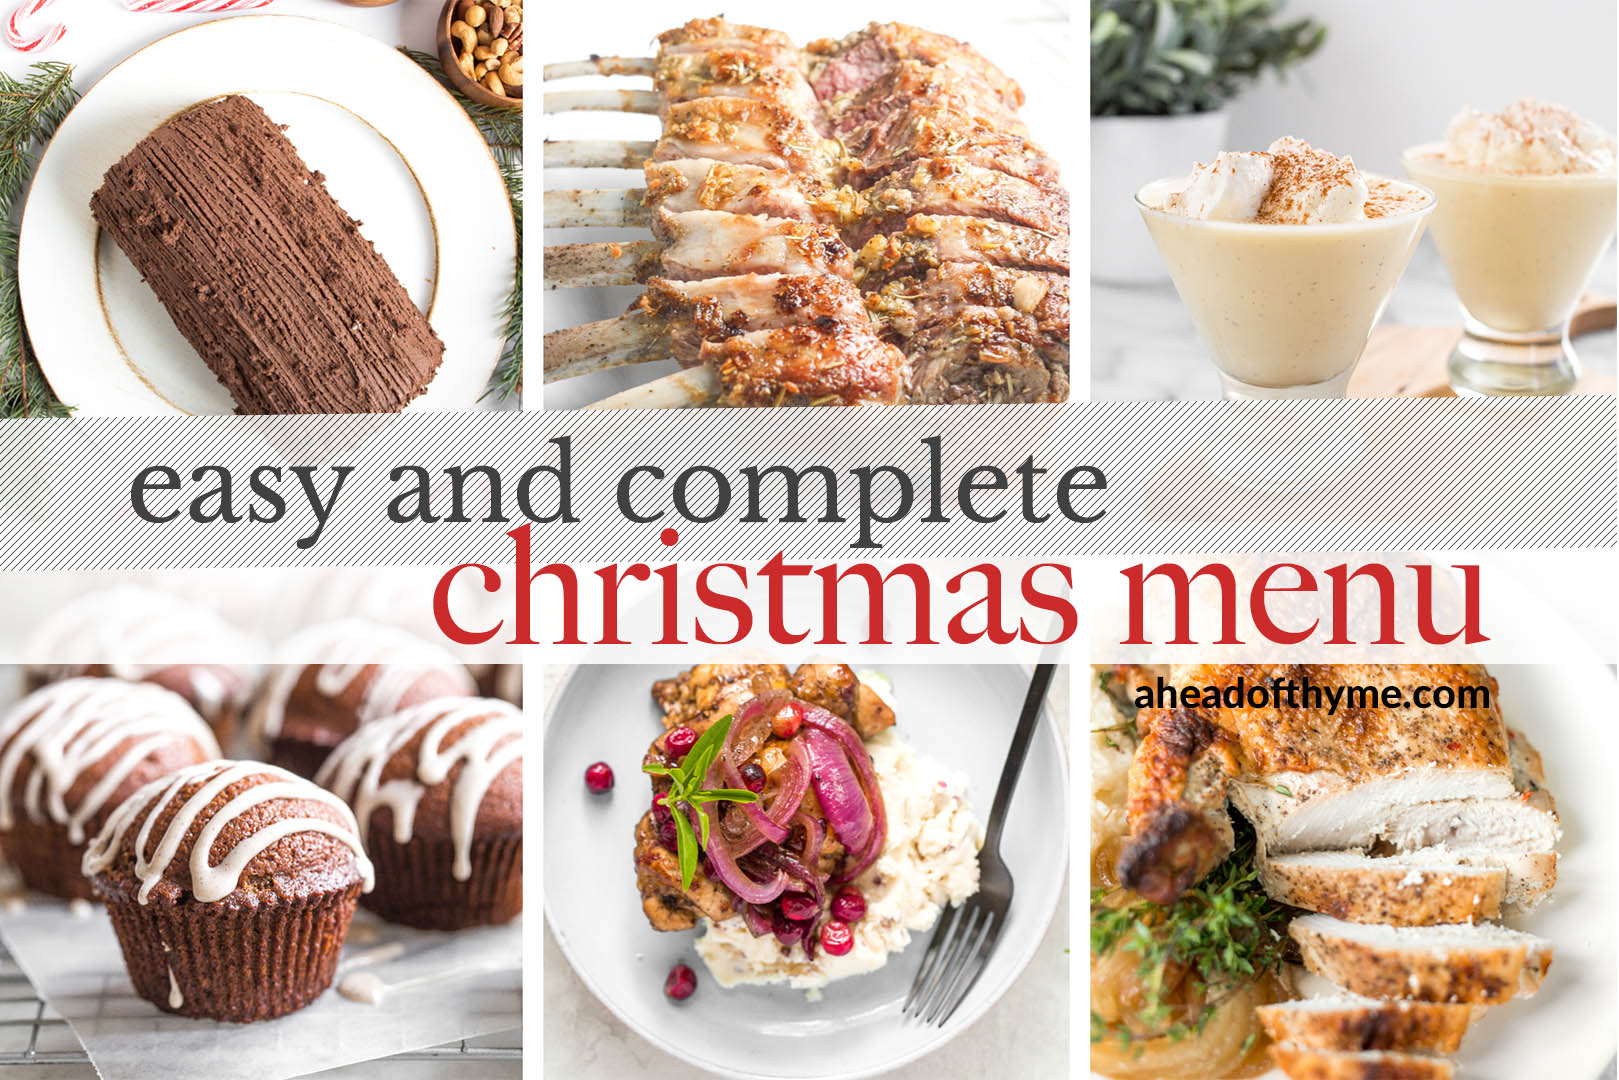 No more stressing over your holiday dinner or brunch -- find the perfect, easy and complete Christmas menu and recipes for the whole day all in one place!